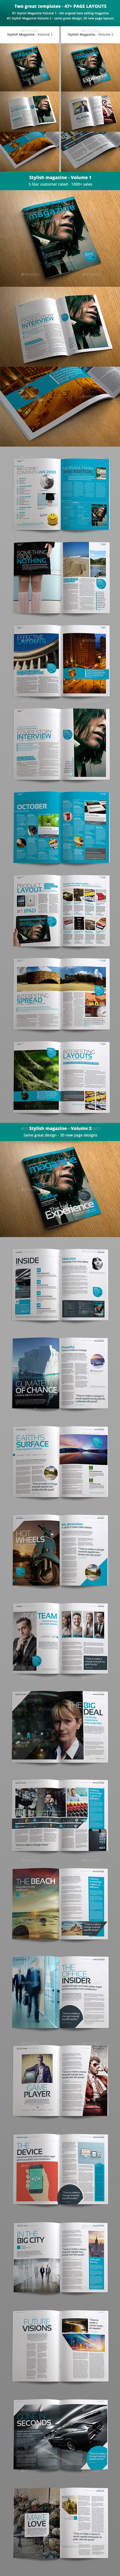 Stylish Magazine Bundle - Magazines Print Templates